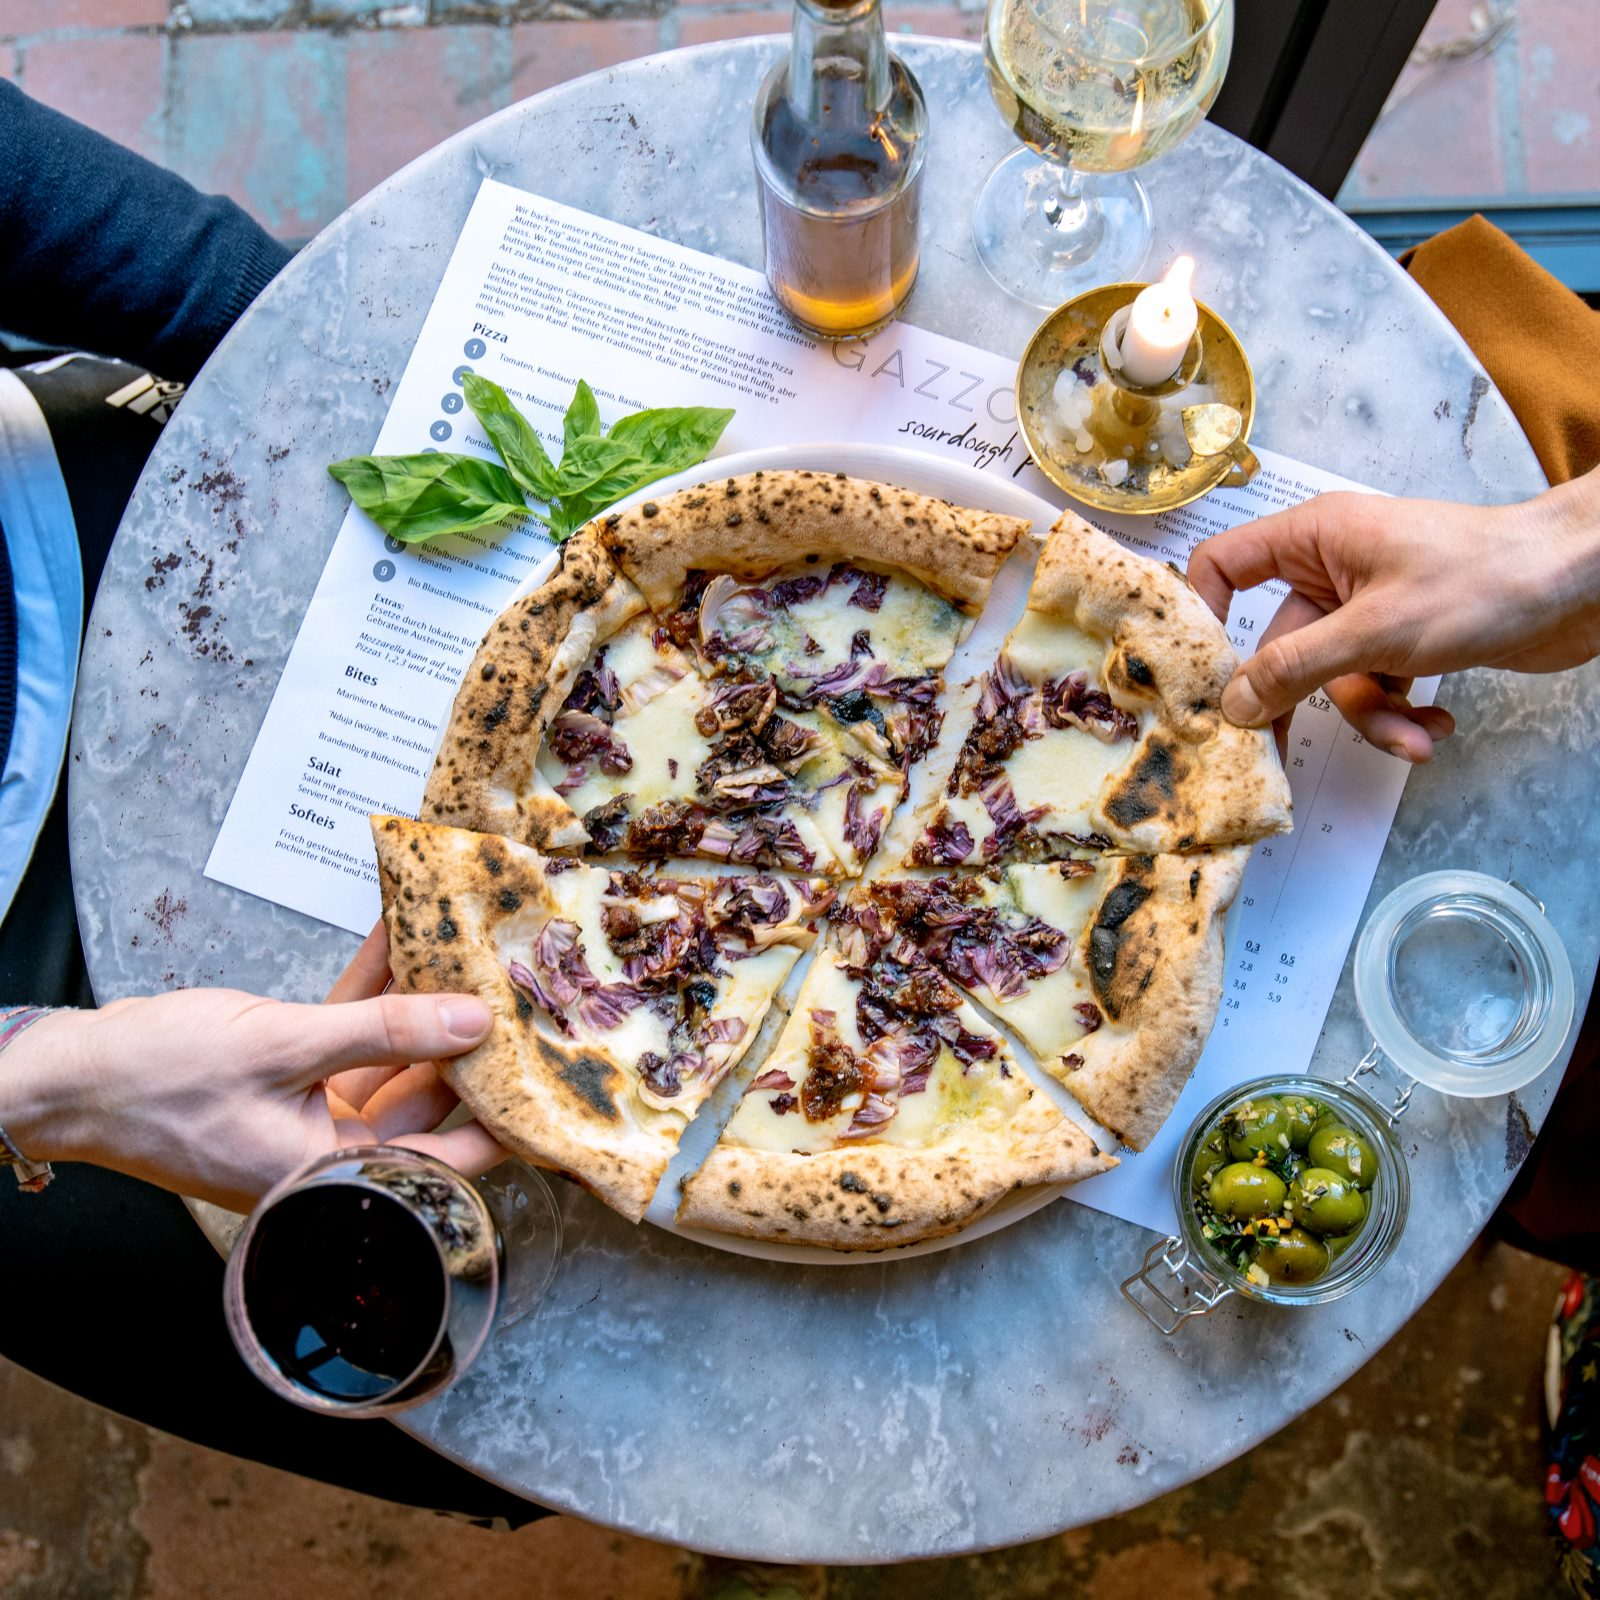 Sourdough pizza with a cheese and radicchio topping on a marble table with wine glasses, a candle and olives at Gazzo pizza.